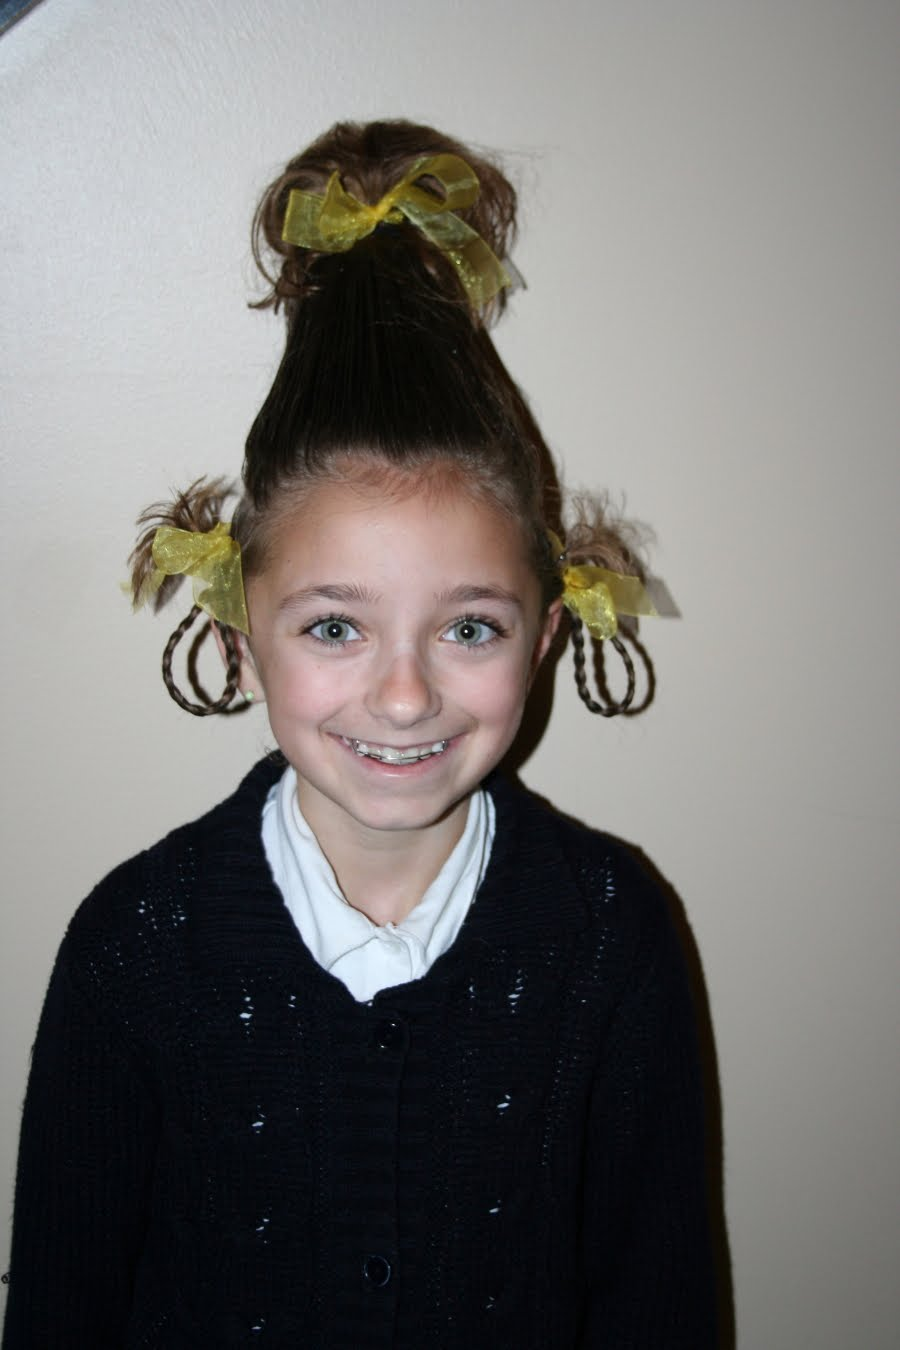 Our crazy hair day cute girls hairstyles our crazy hair day urmus Gallery